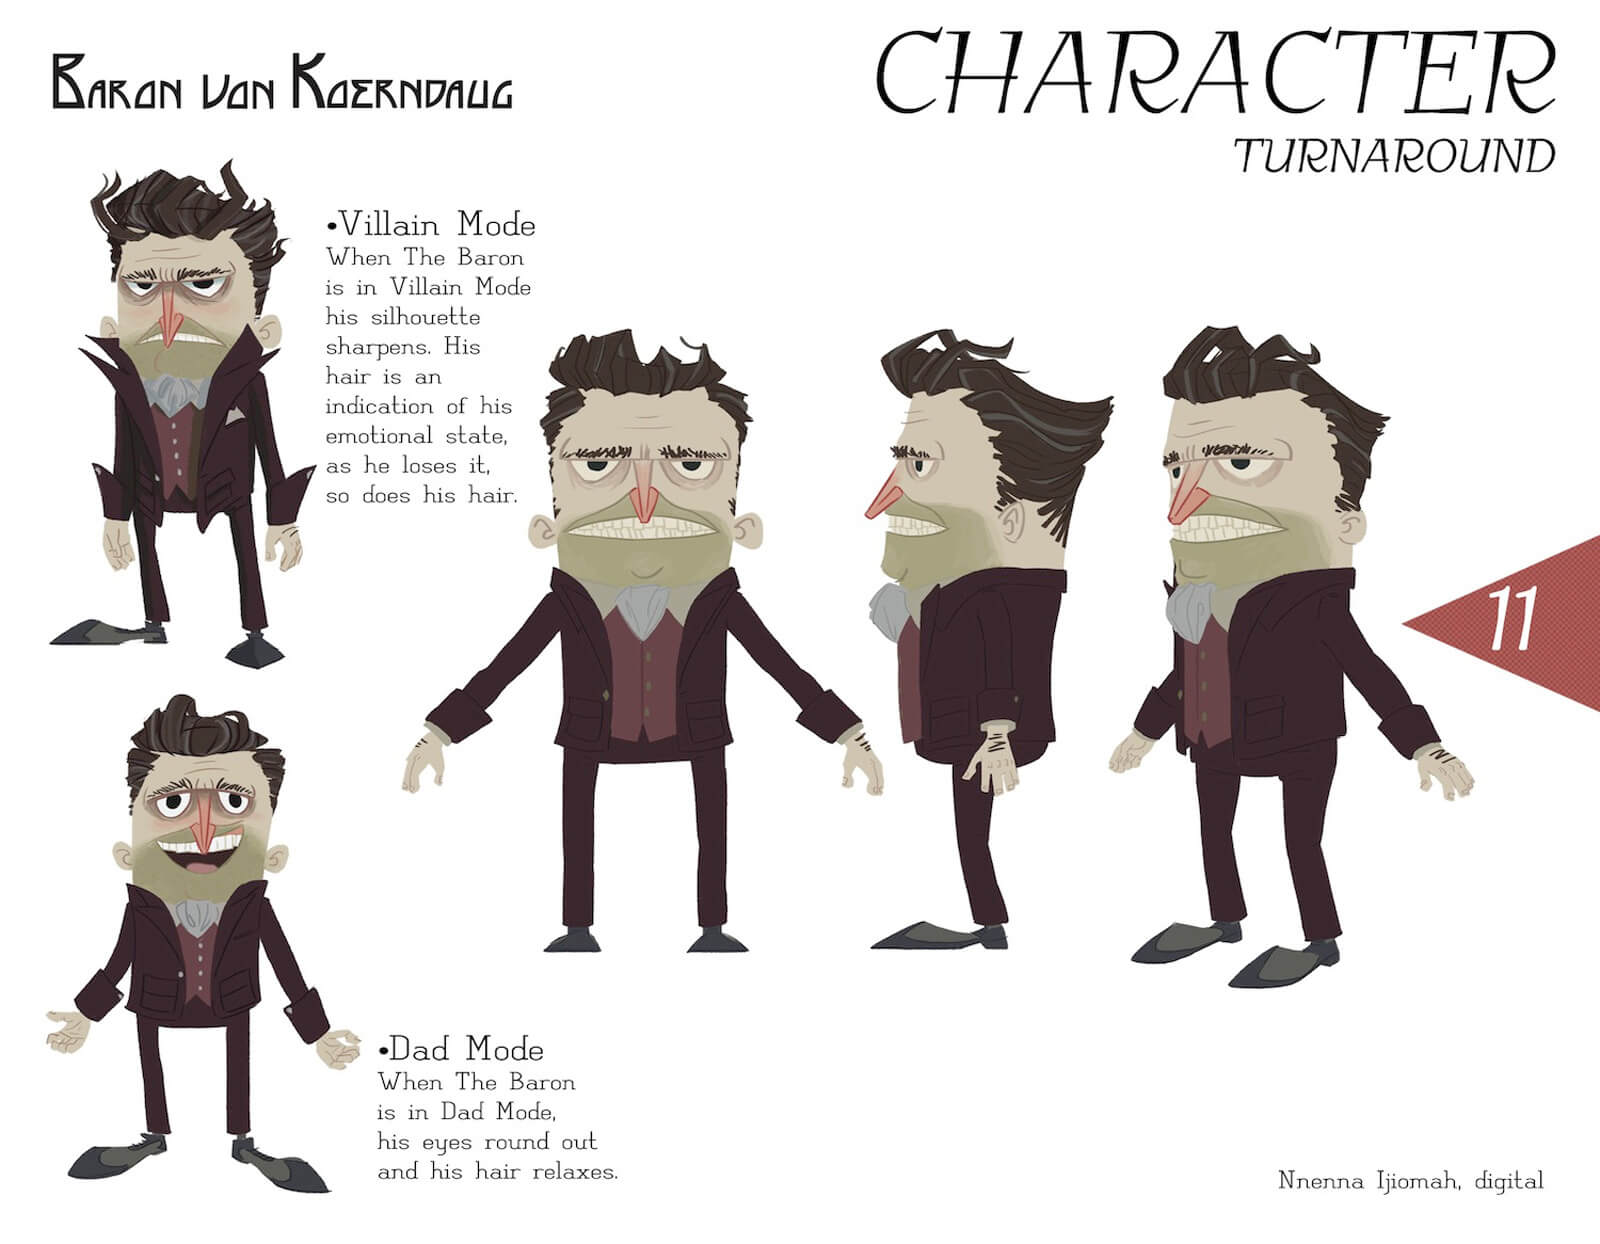 Character turnaround slide for Baron von Koerndaug, showing model from different angles and at different moods